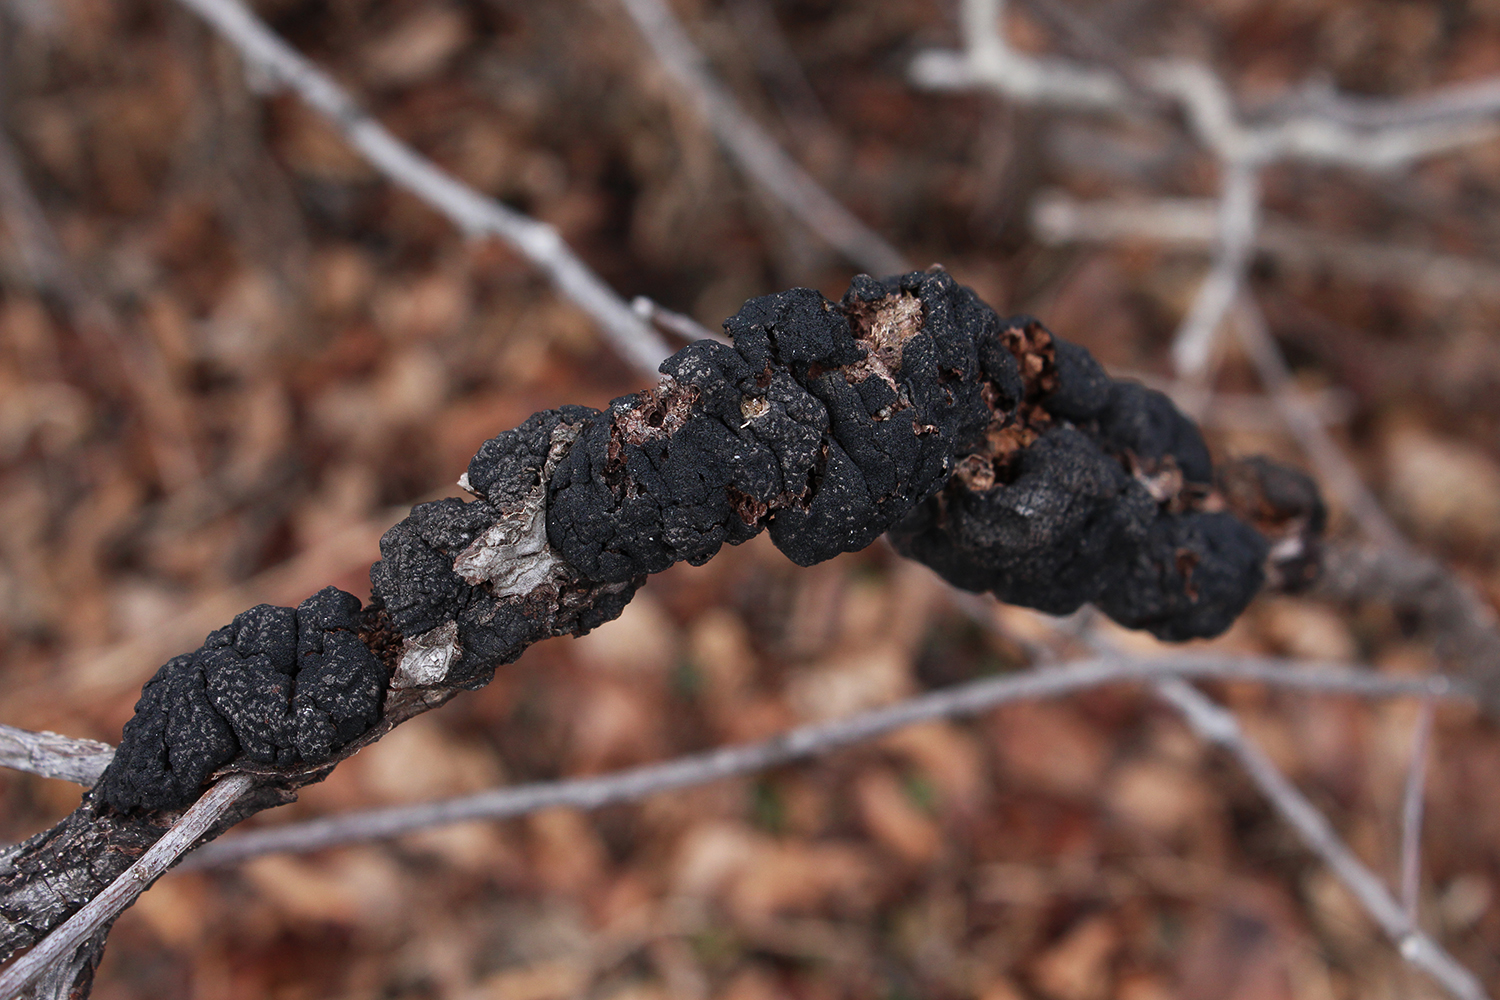 black knot disease in an infected chokecherry branch.